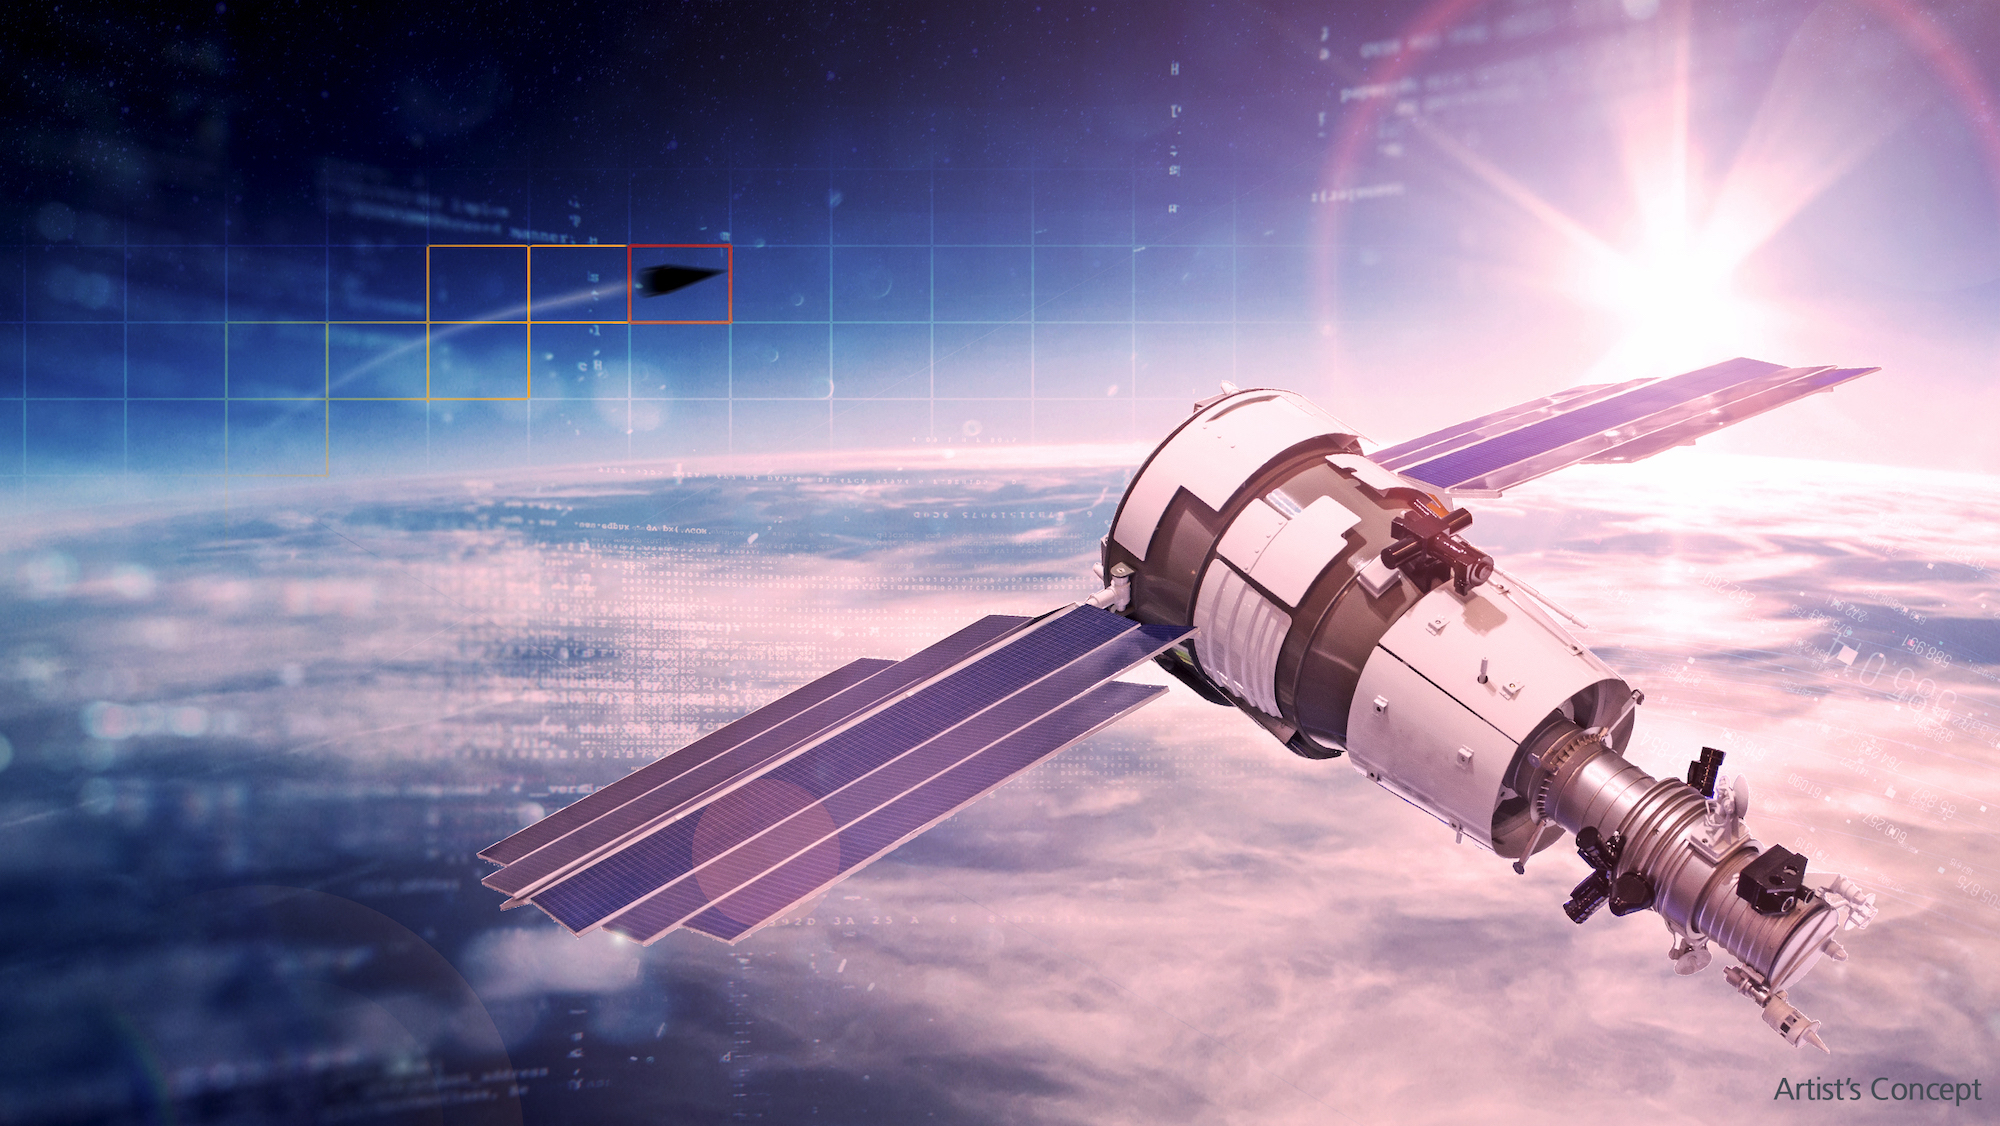 BAE wins DARPA contract to develop machine learning technology for space operations